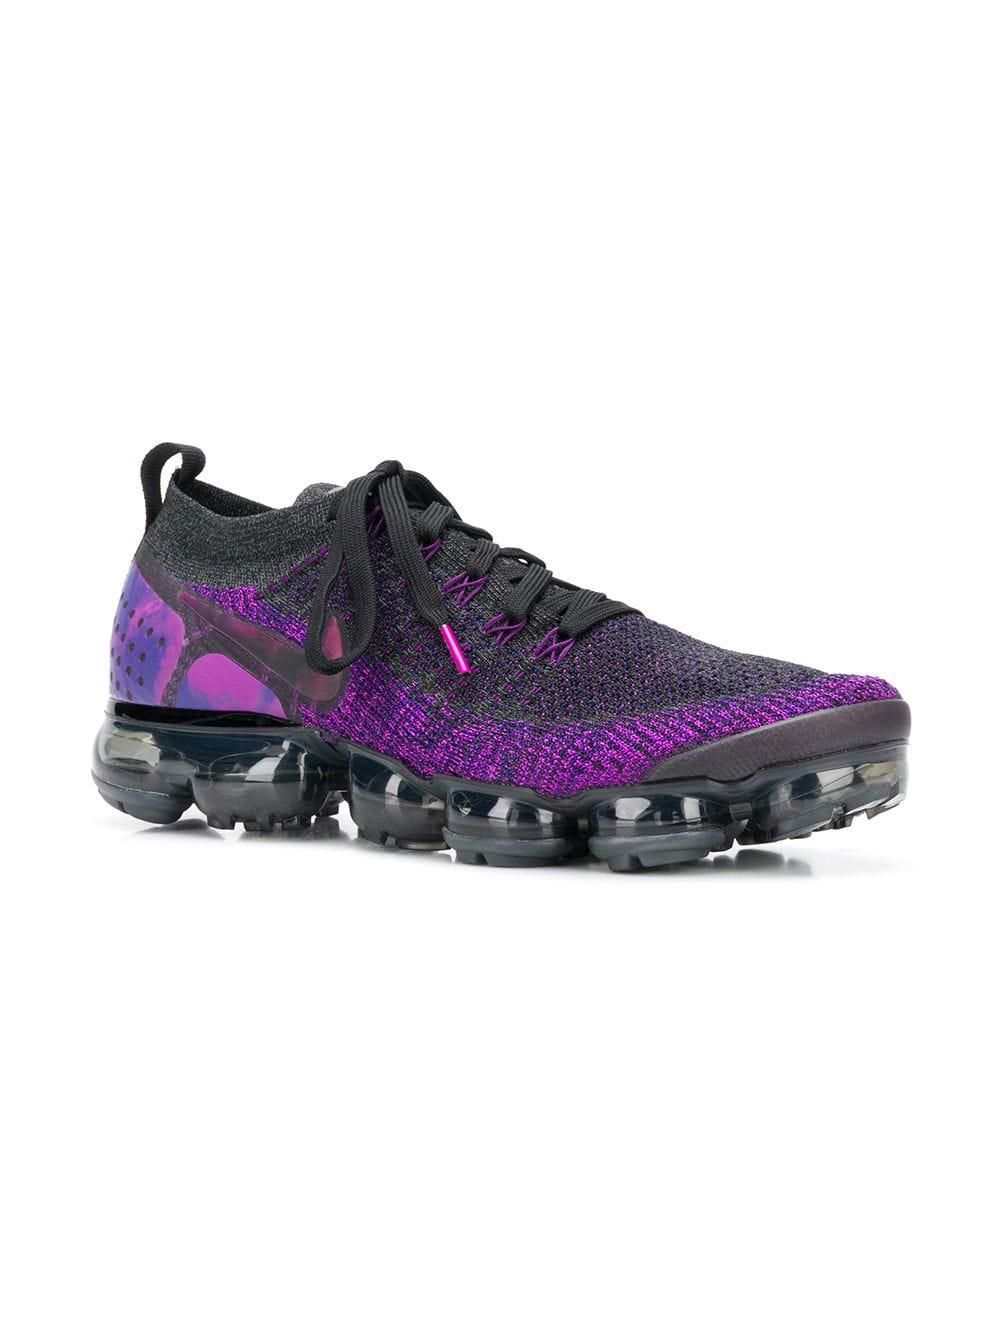 Lyst - Nike Air Vapormax Flyknit 2 Sneakers in Purple for Men - Save 10% f3756f300